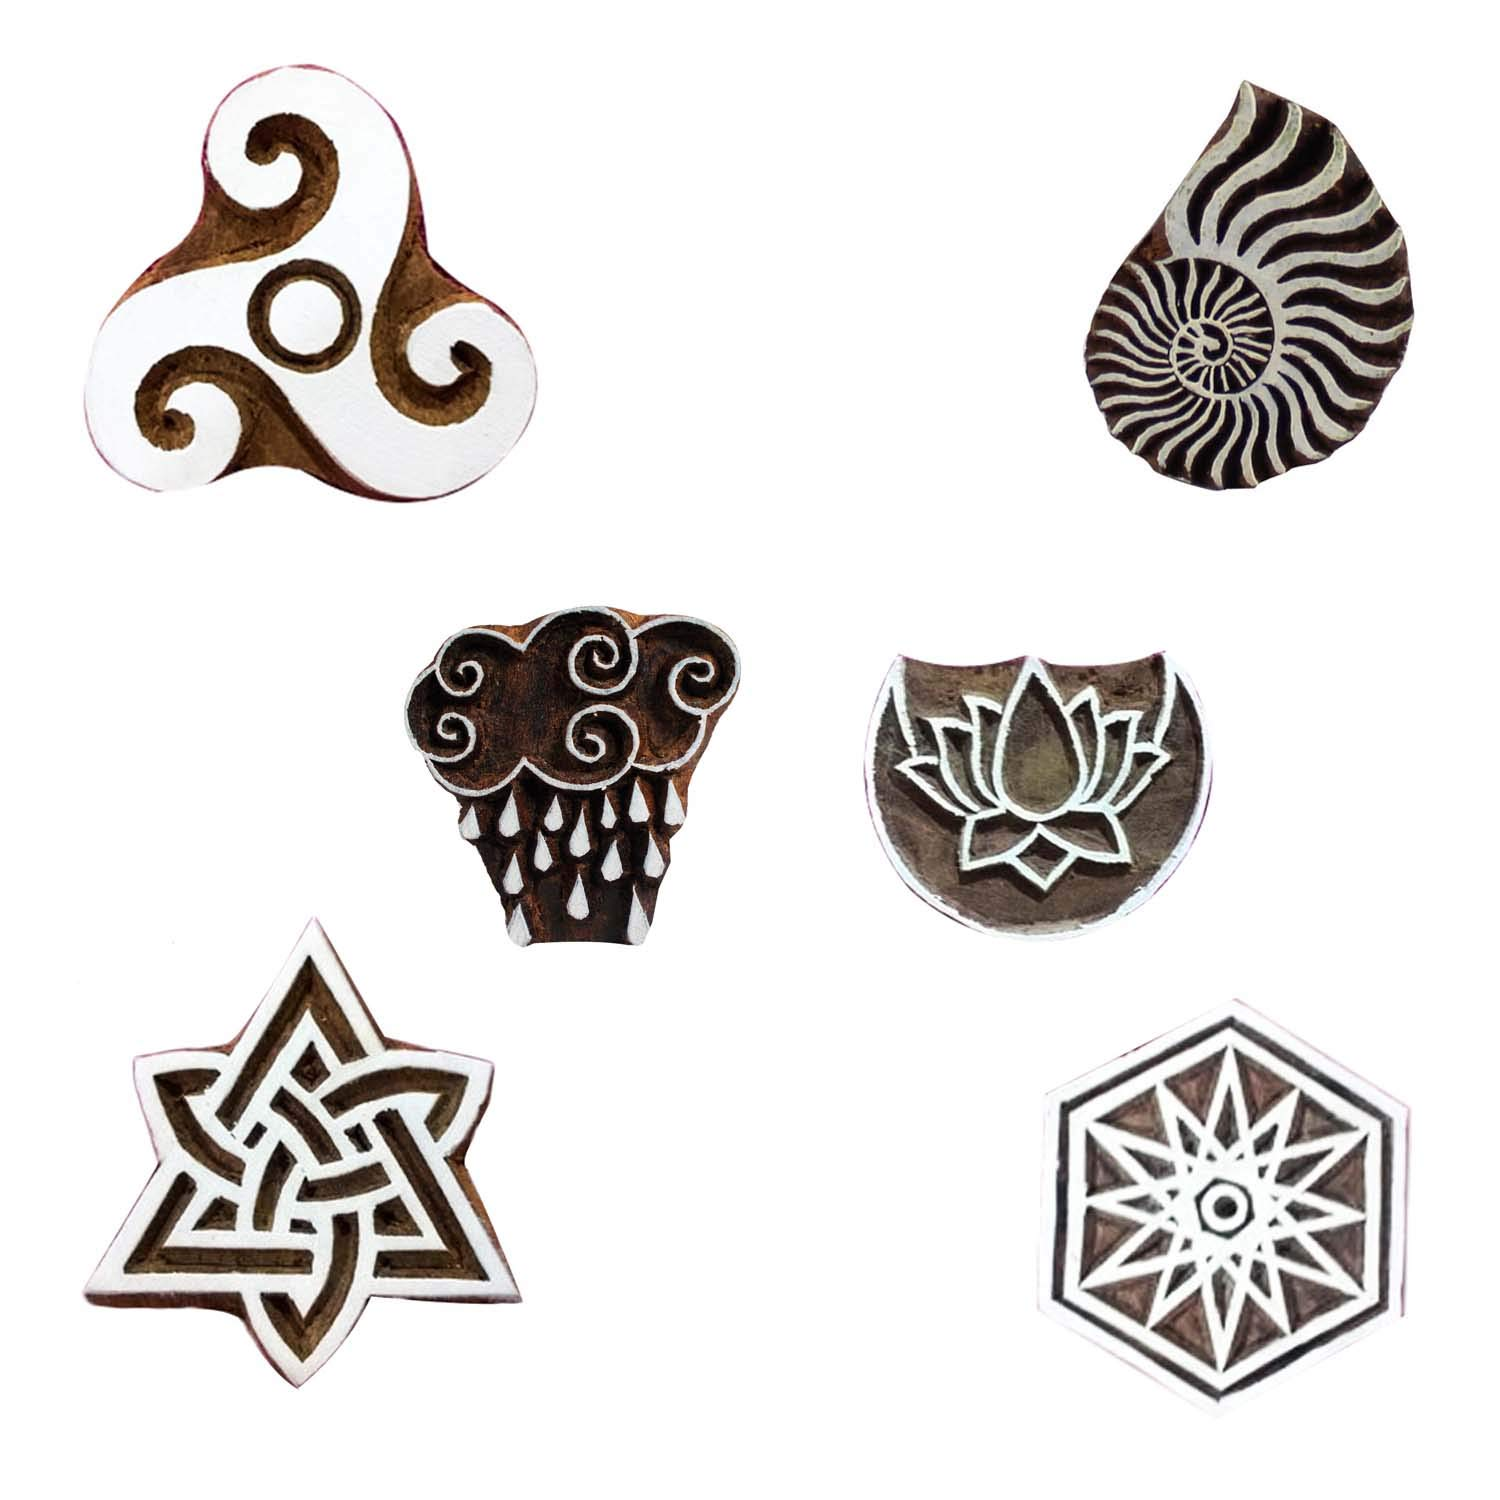 Wooden Printing Block Celtic, Sea Shell, Lotus On Moon Textile Stamp for Scrapbook Heena Tattoo Clay Pottery Set of 6 by CraftyArt